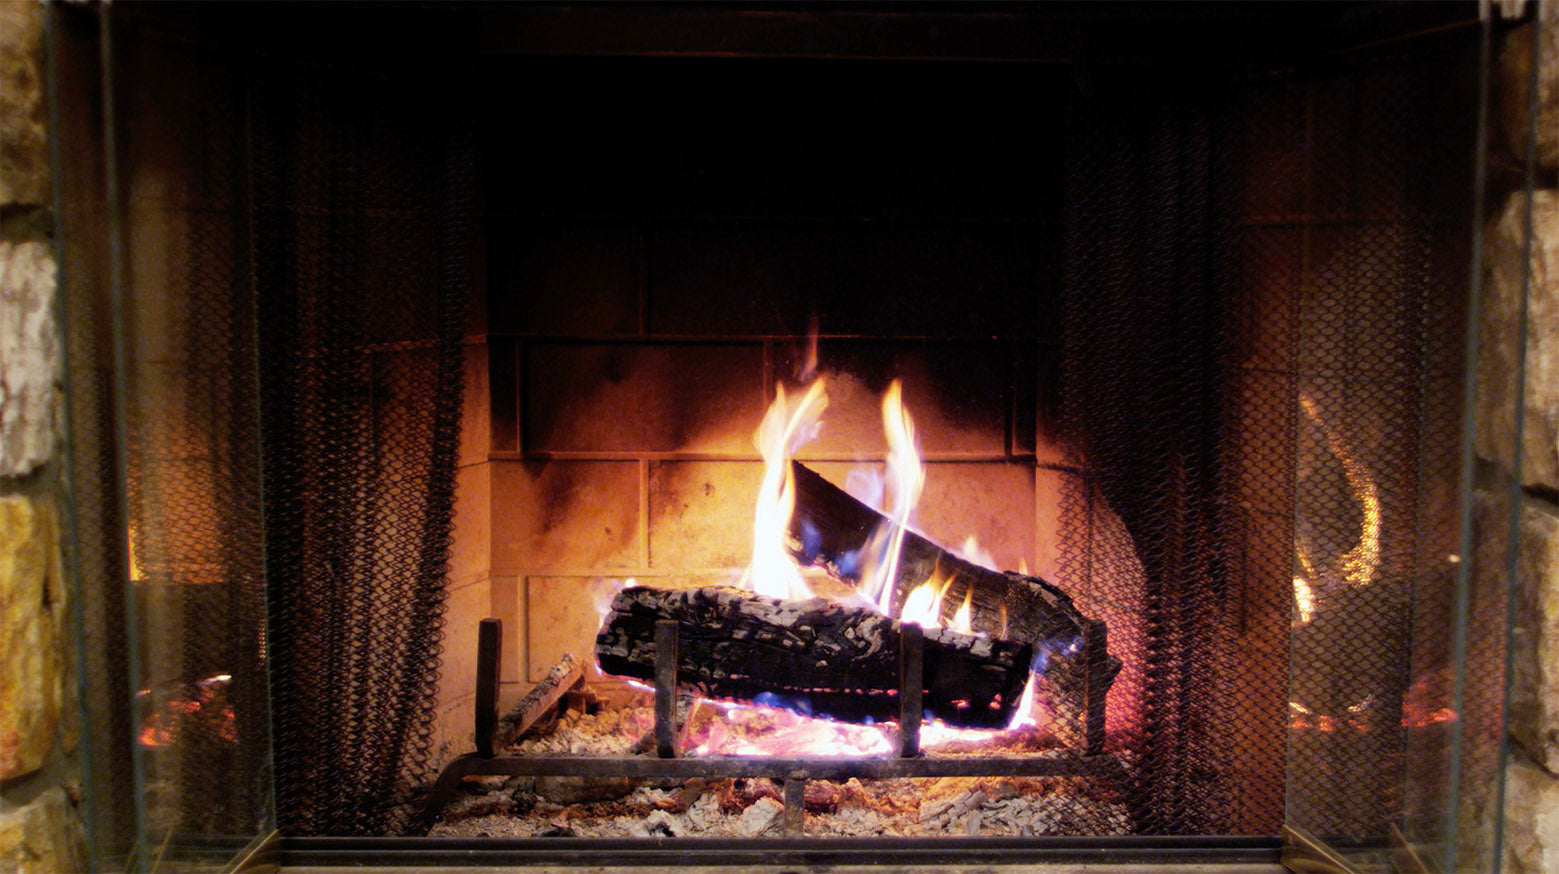 Free 4K stock video of a fire in fireplace